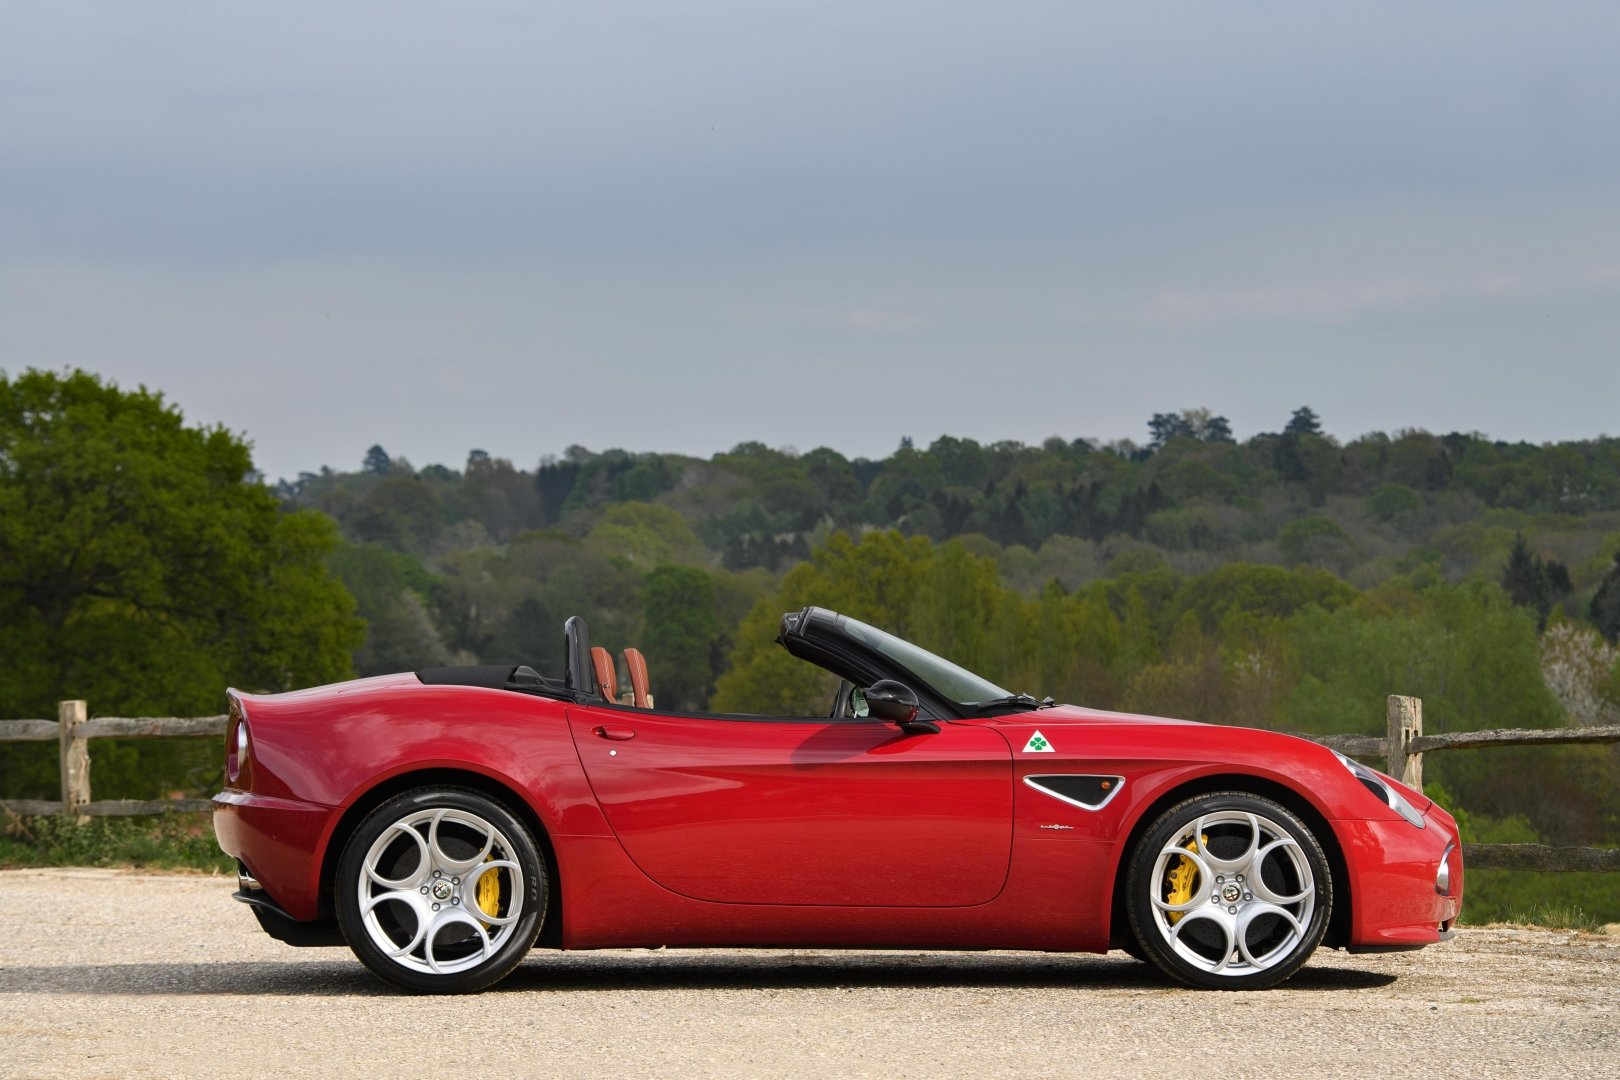 2010 Alfa Romeo 8C Spider - 3000 miles from new, two owners  For Sale (picture 2 of 6)